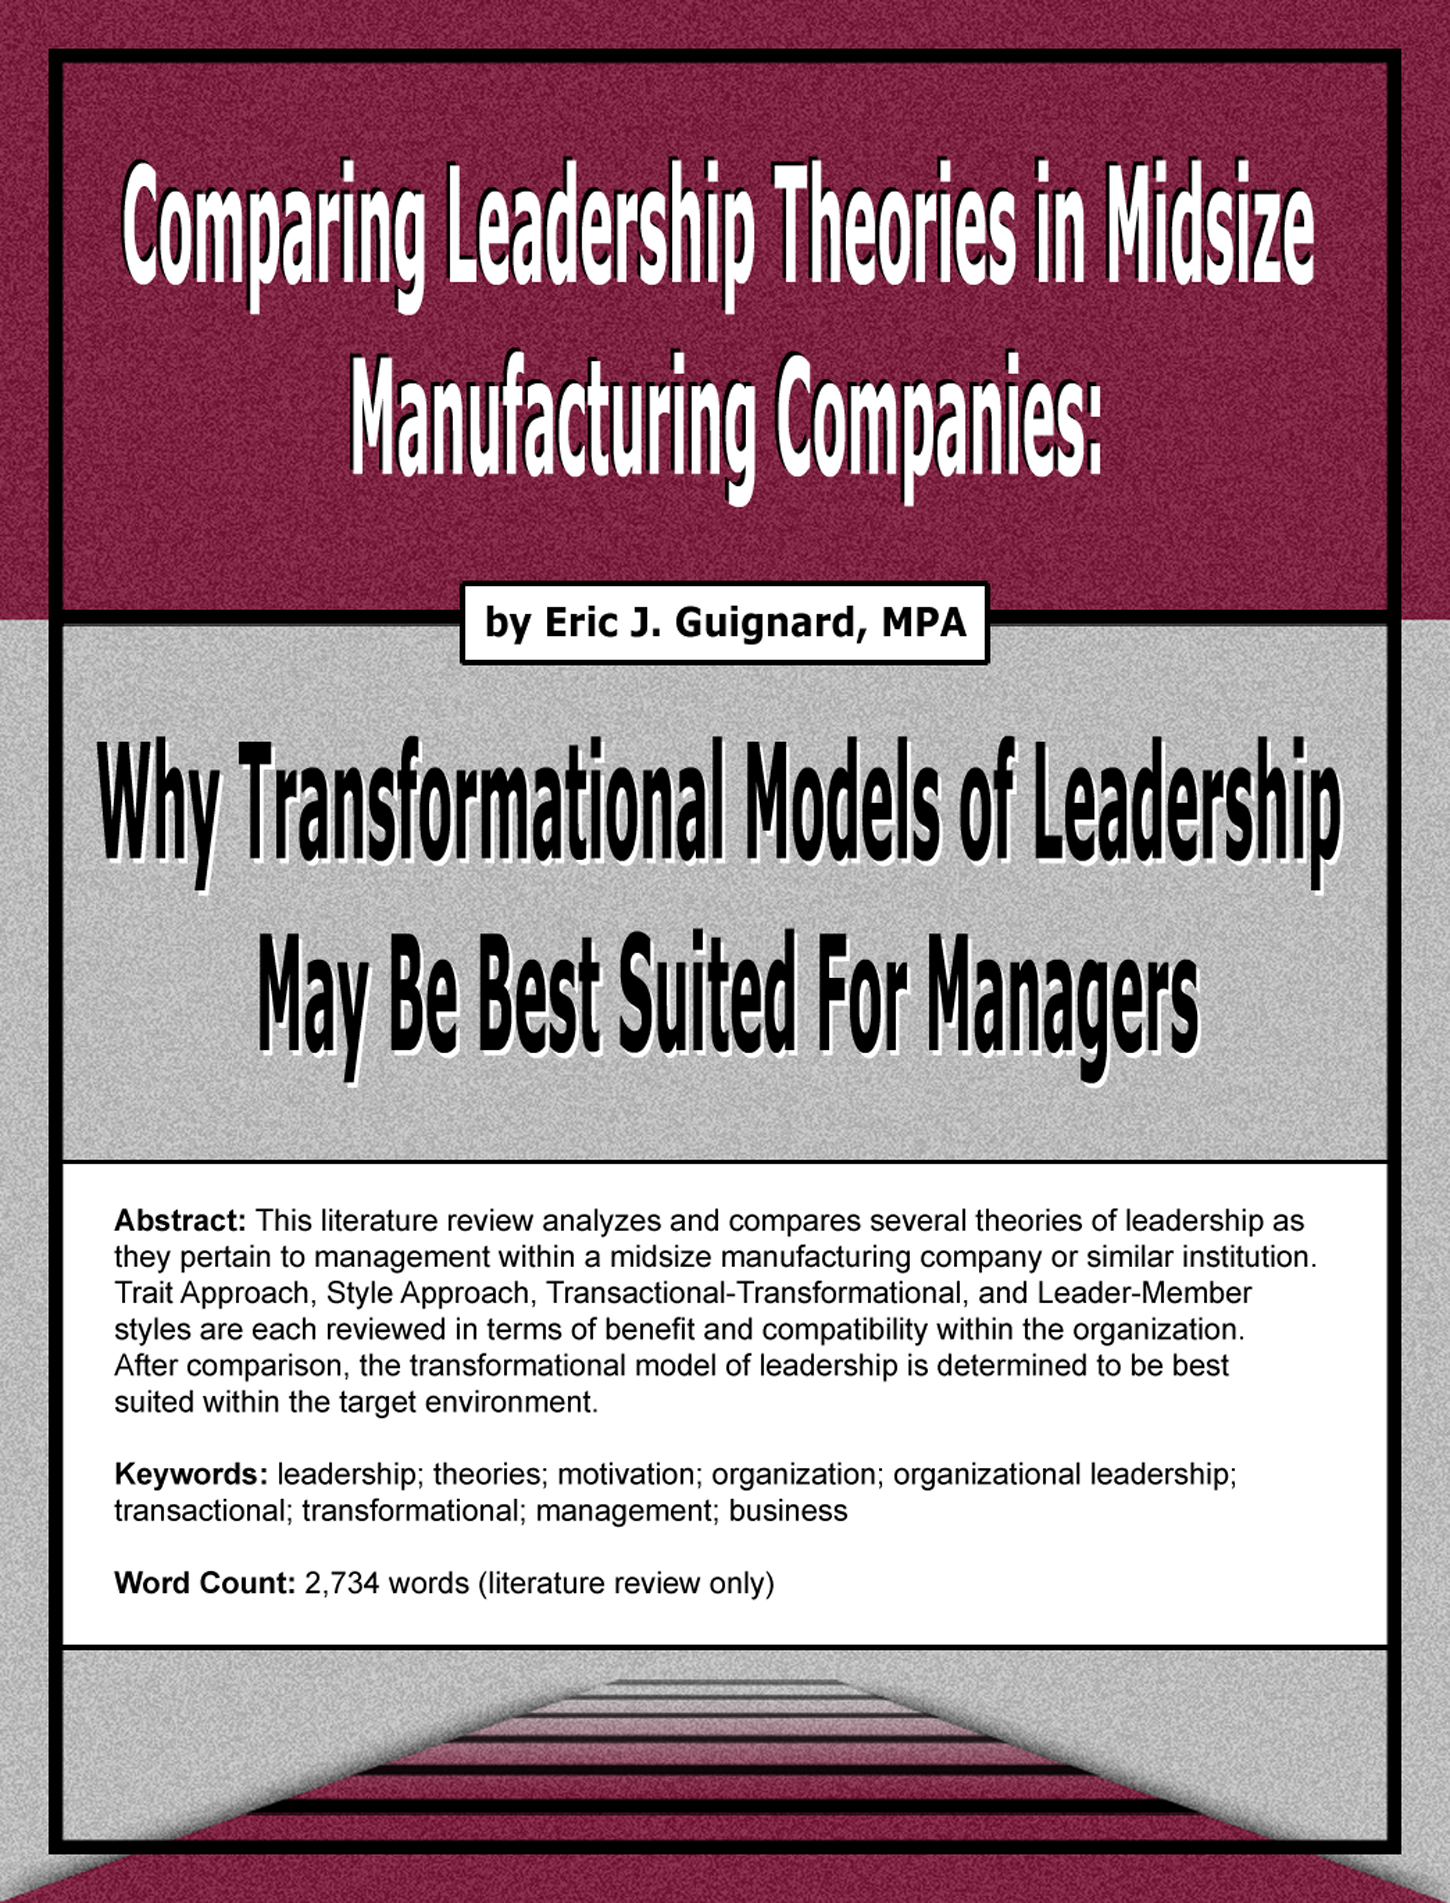 organizational motivation and leadership in the workplace paper 10 great organizational behavior research paper topics writing a research paper is not as hard as settling on a topic for your paper organizational behavior is an exciting field of study, work and research.